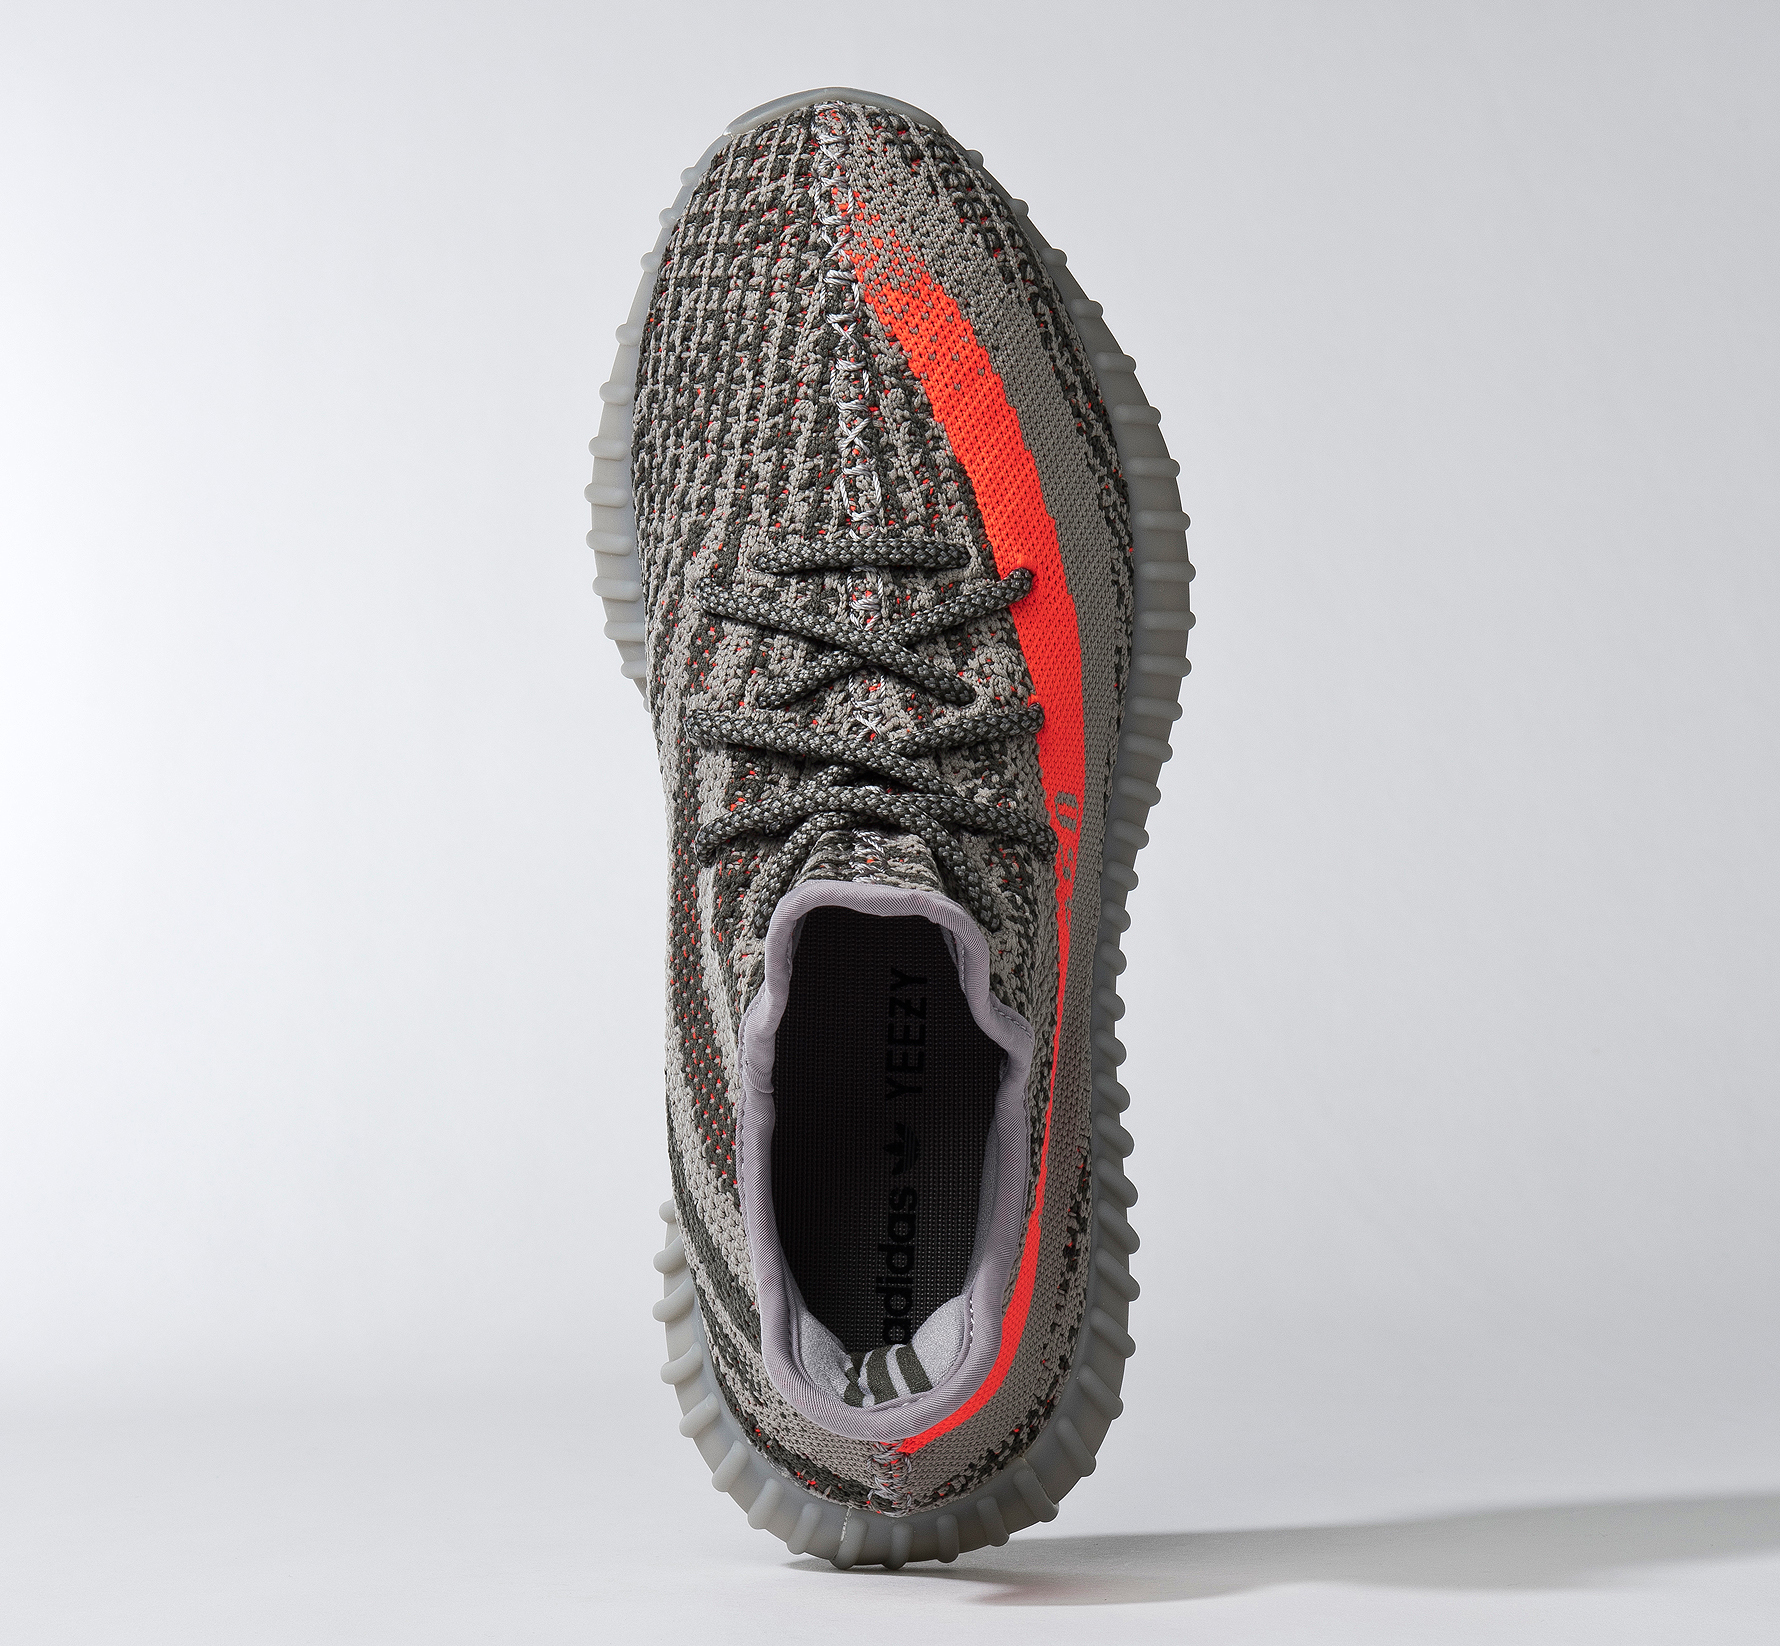 Adidas Yeezy Boost 350 v 2 Black Red Arrives Feb. 11; Adidas App